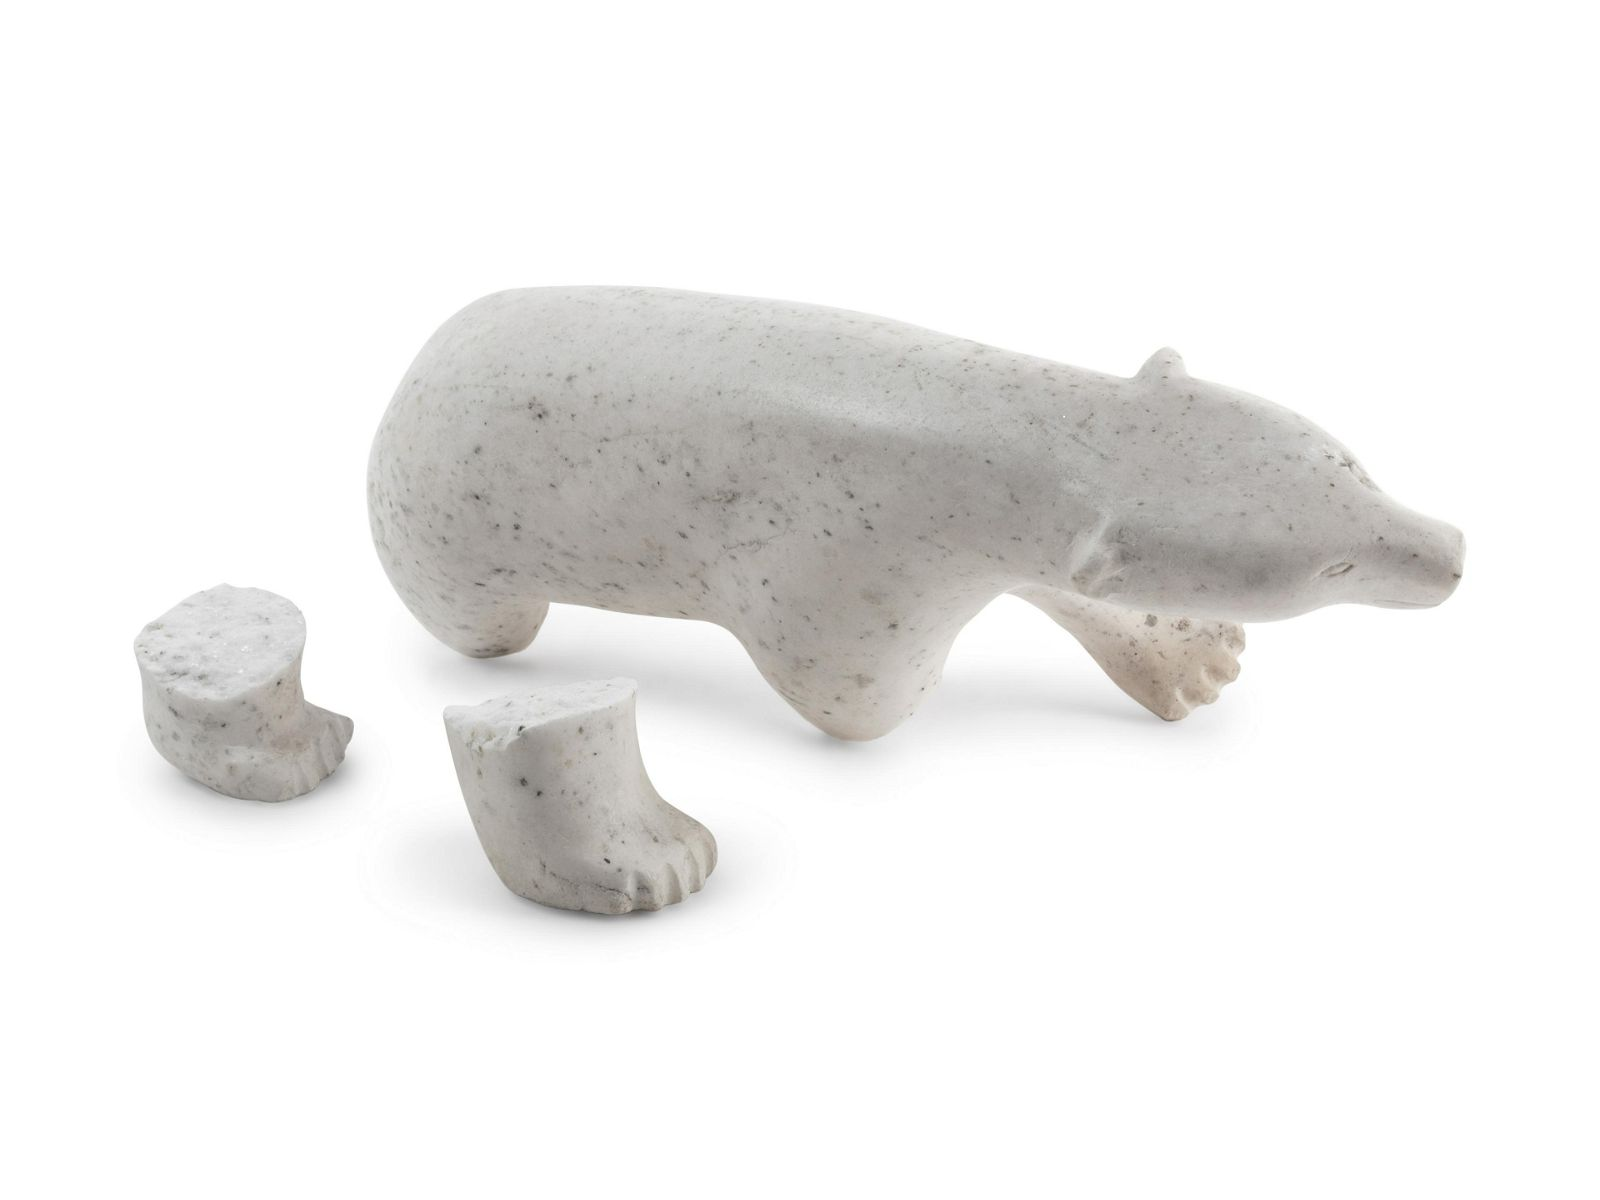 An Inuit Carved Stone Sculpture